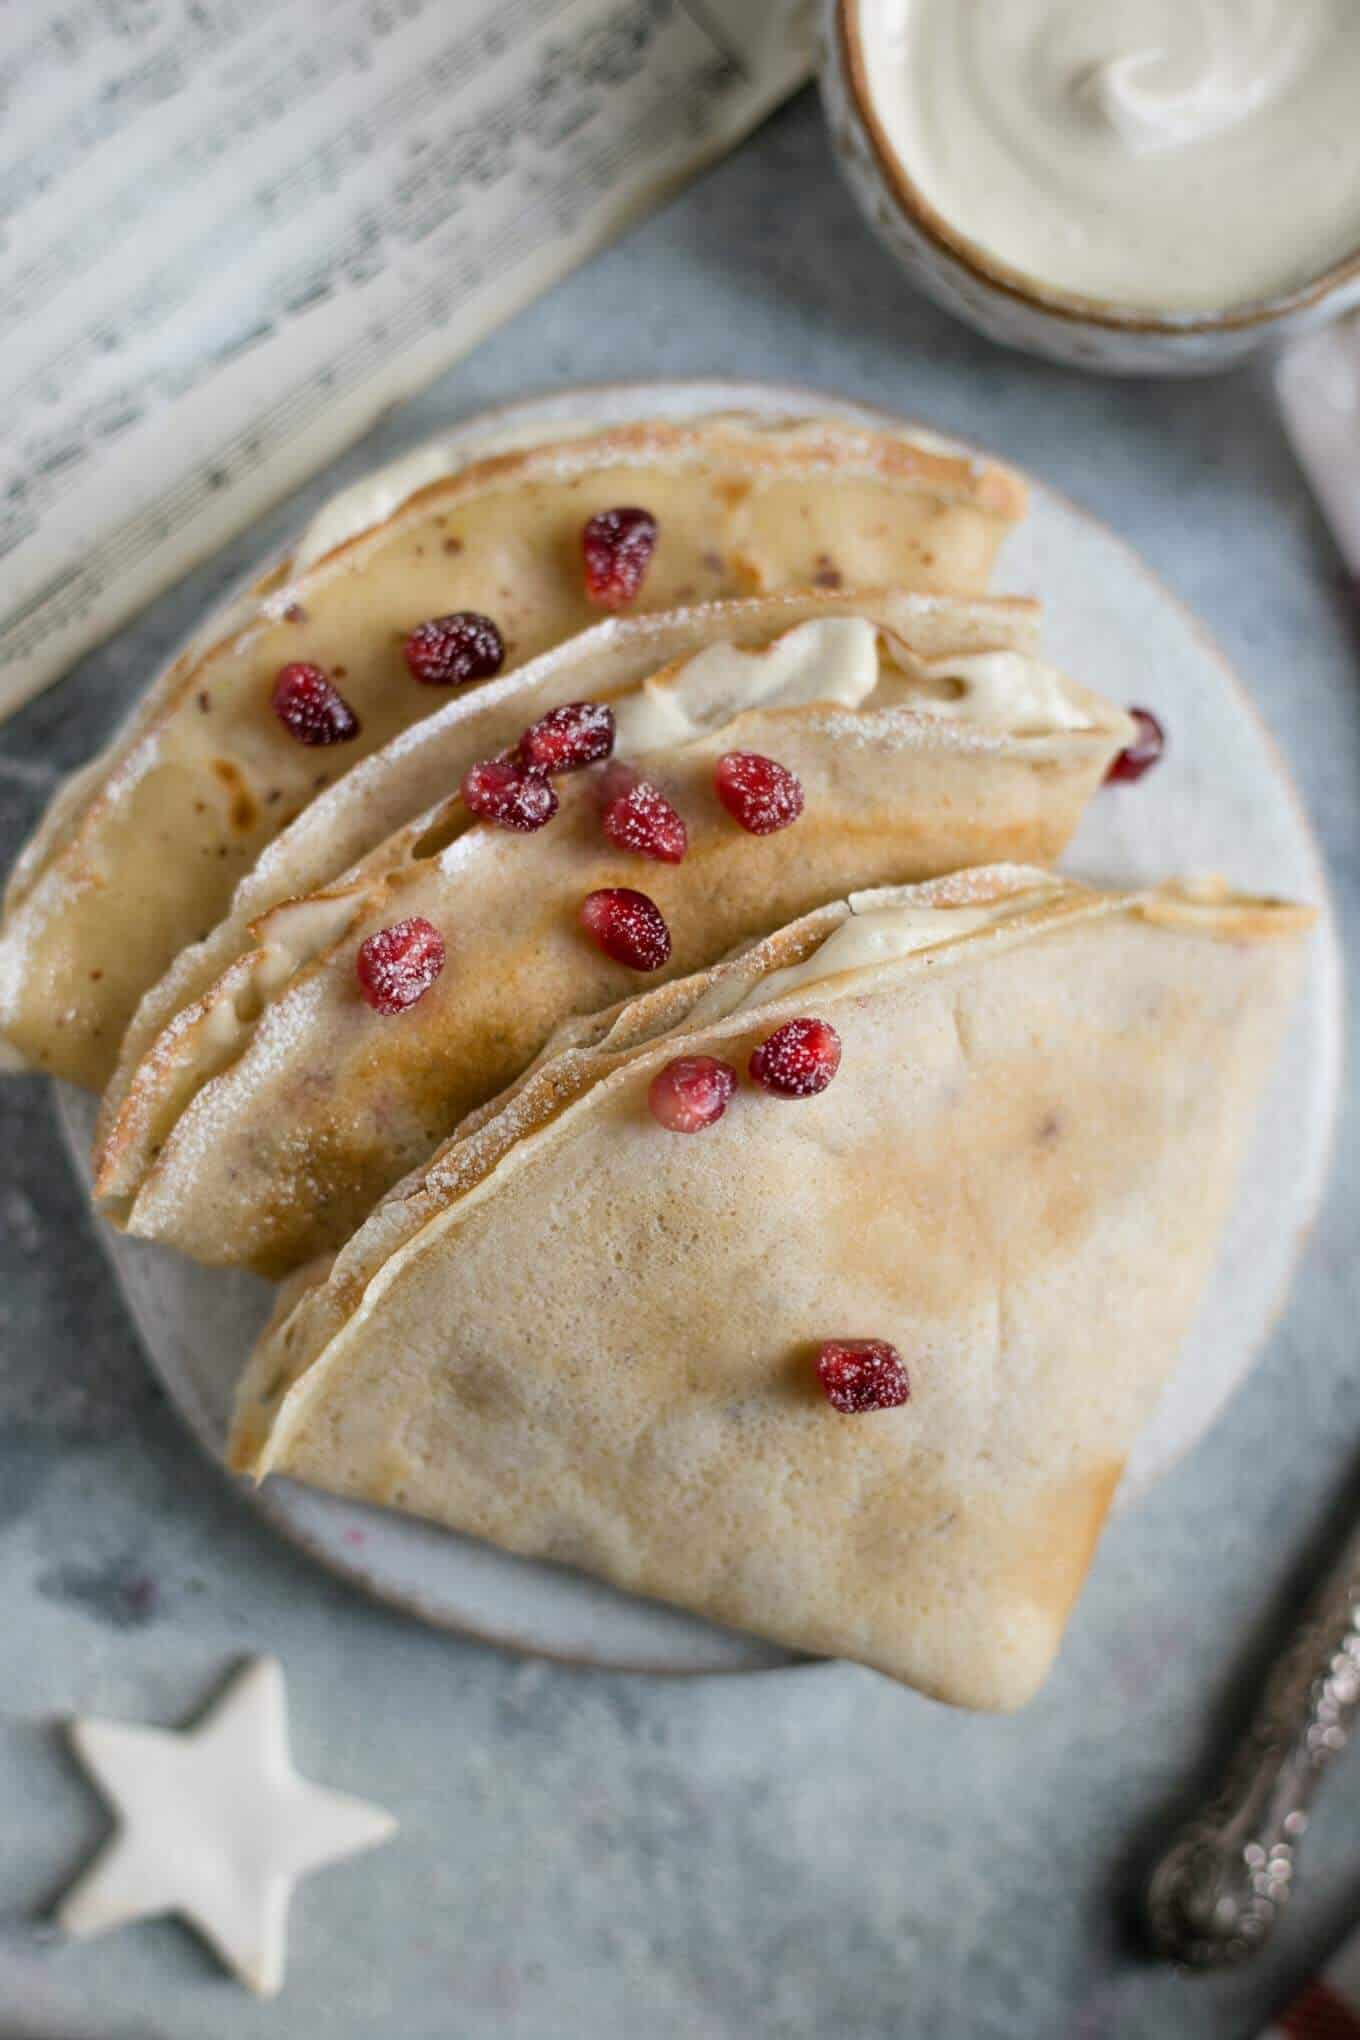 Light and delicate French crepes recipe. Delicious breakfast or brunch! #vegan #crepes #breakfast | via @annabanana.co